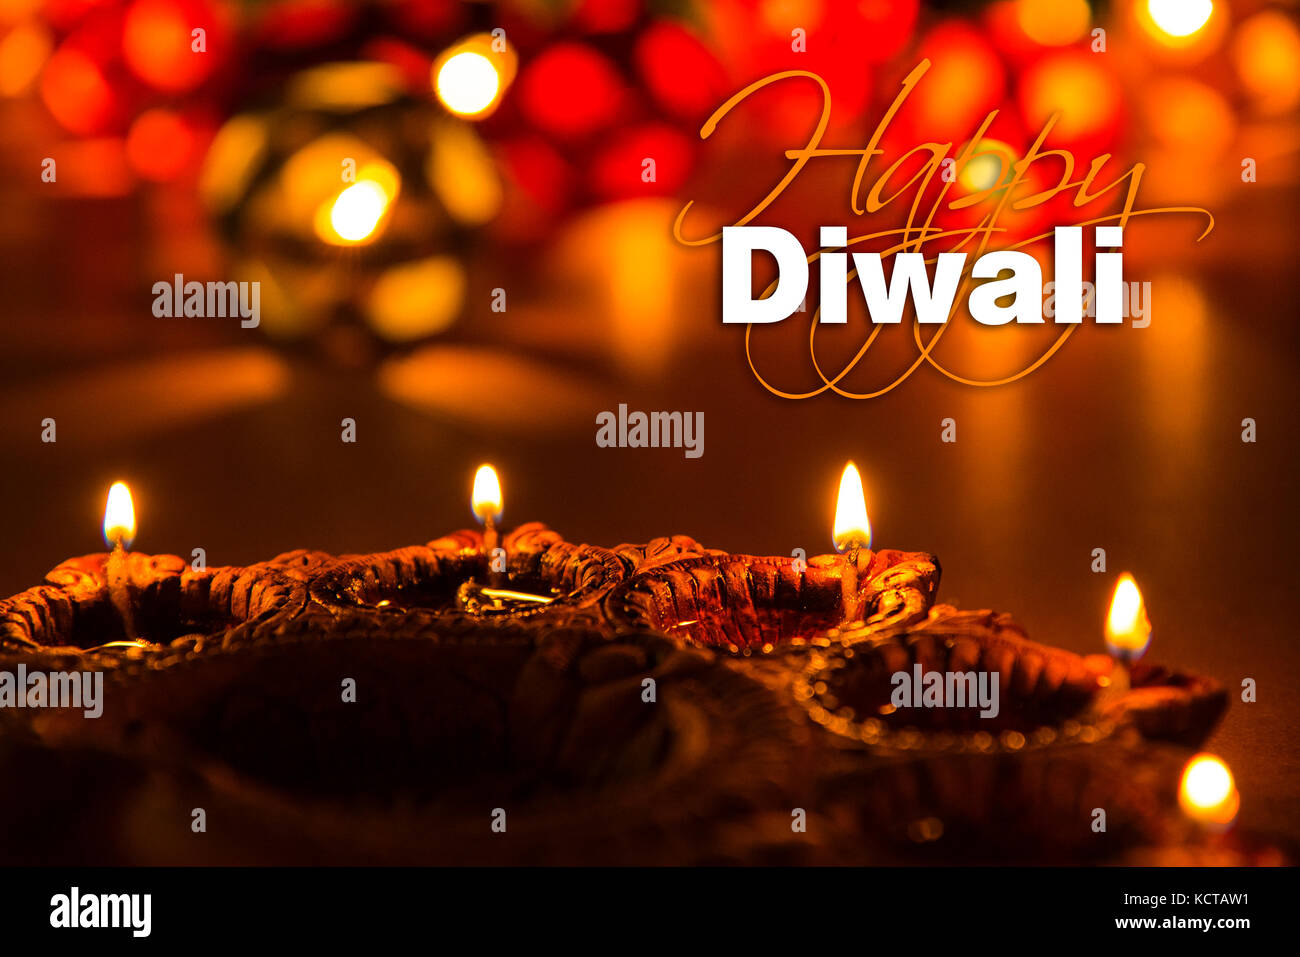 Stock photo of diwali greeting card showing illuminated diya or oil lamp or panti with Happy Diwali text Stock Photo